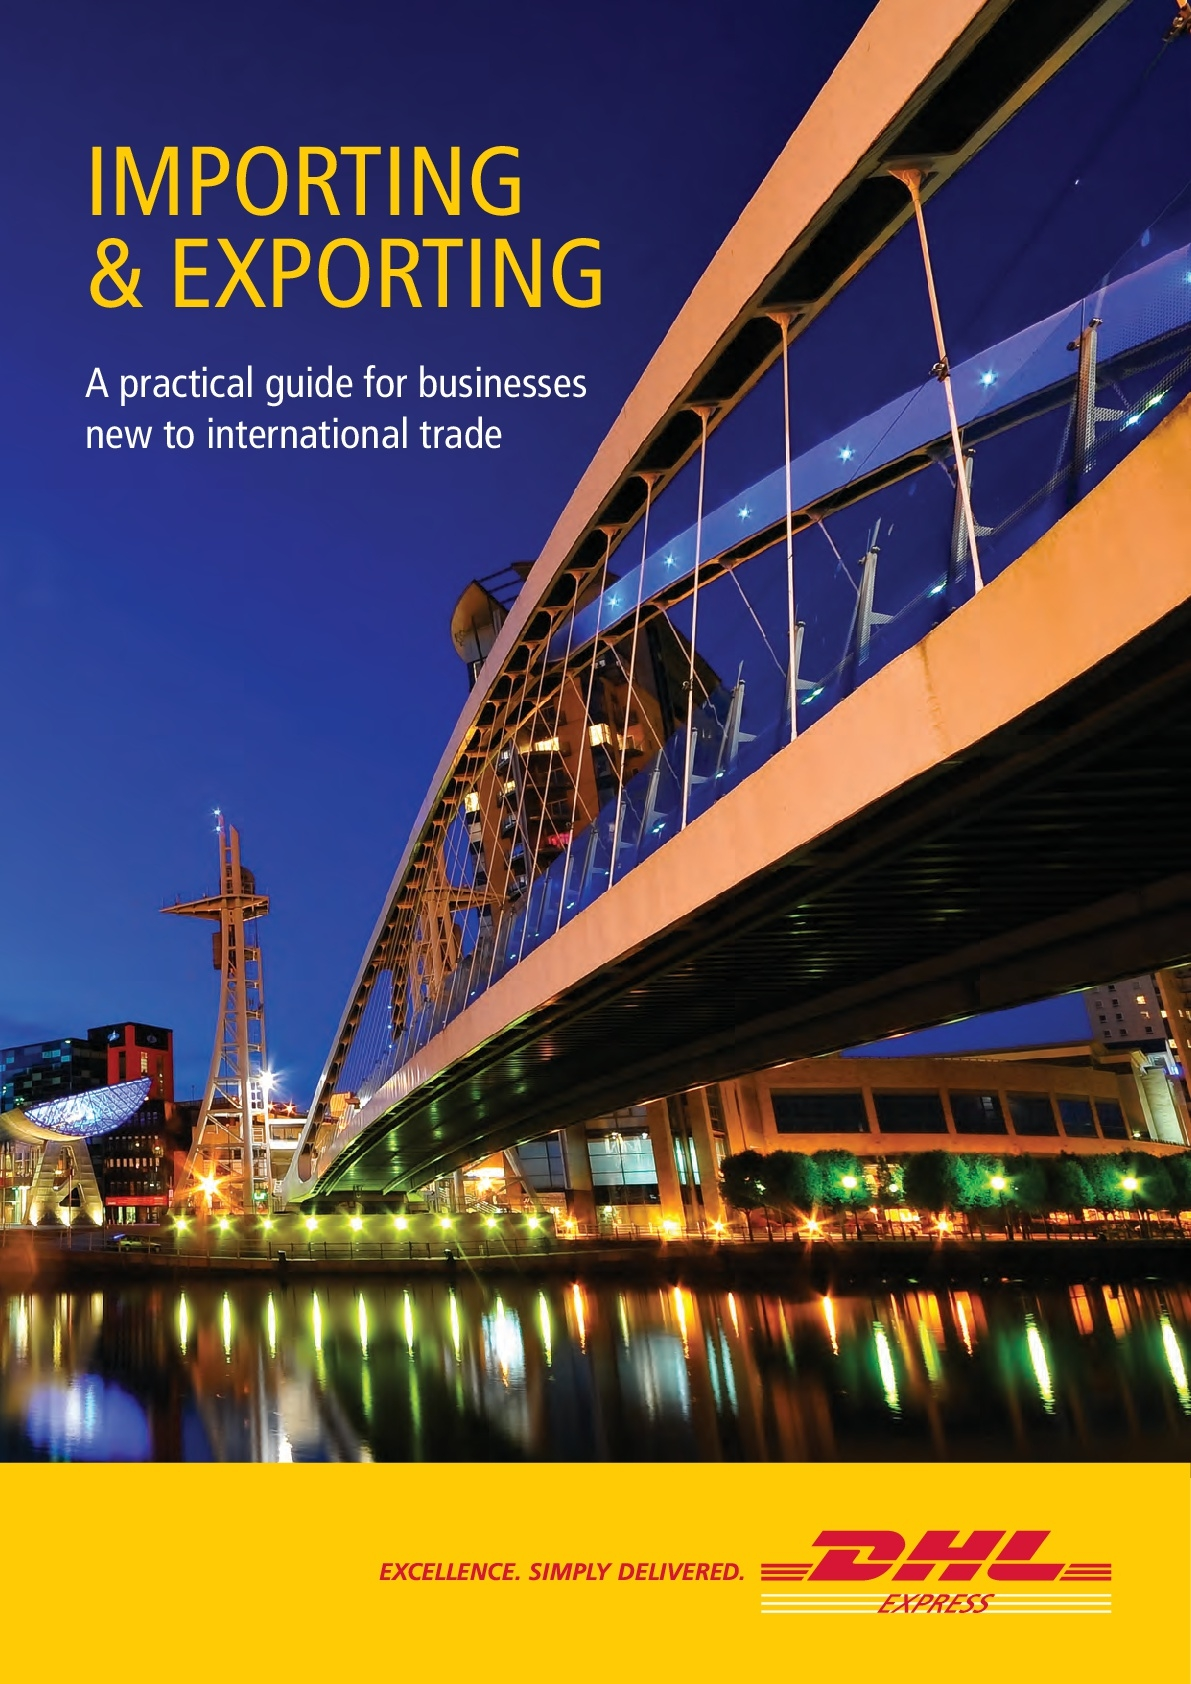 importing exporting business guide 001